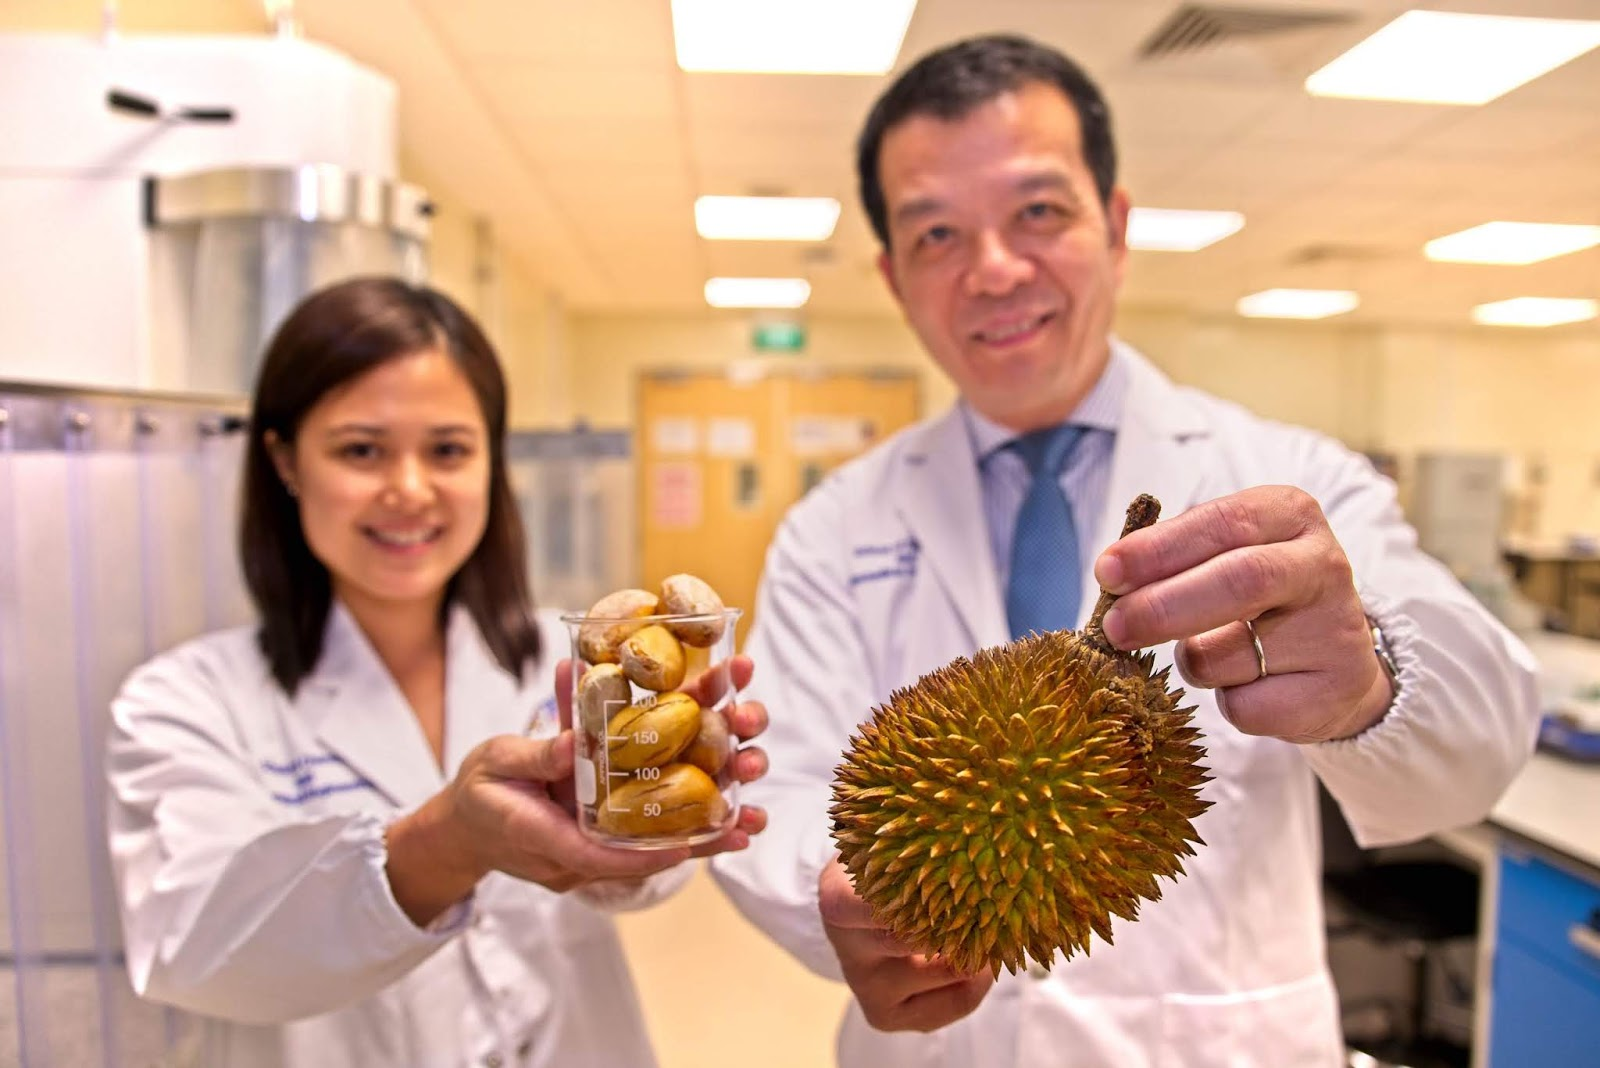 Making durian seeds great again: (L-R) NTU research fellow Dr Jaslyn Lee and Prof William Chen, NTU Director for the Food Science